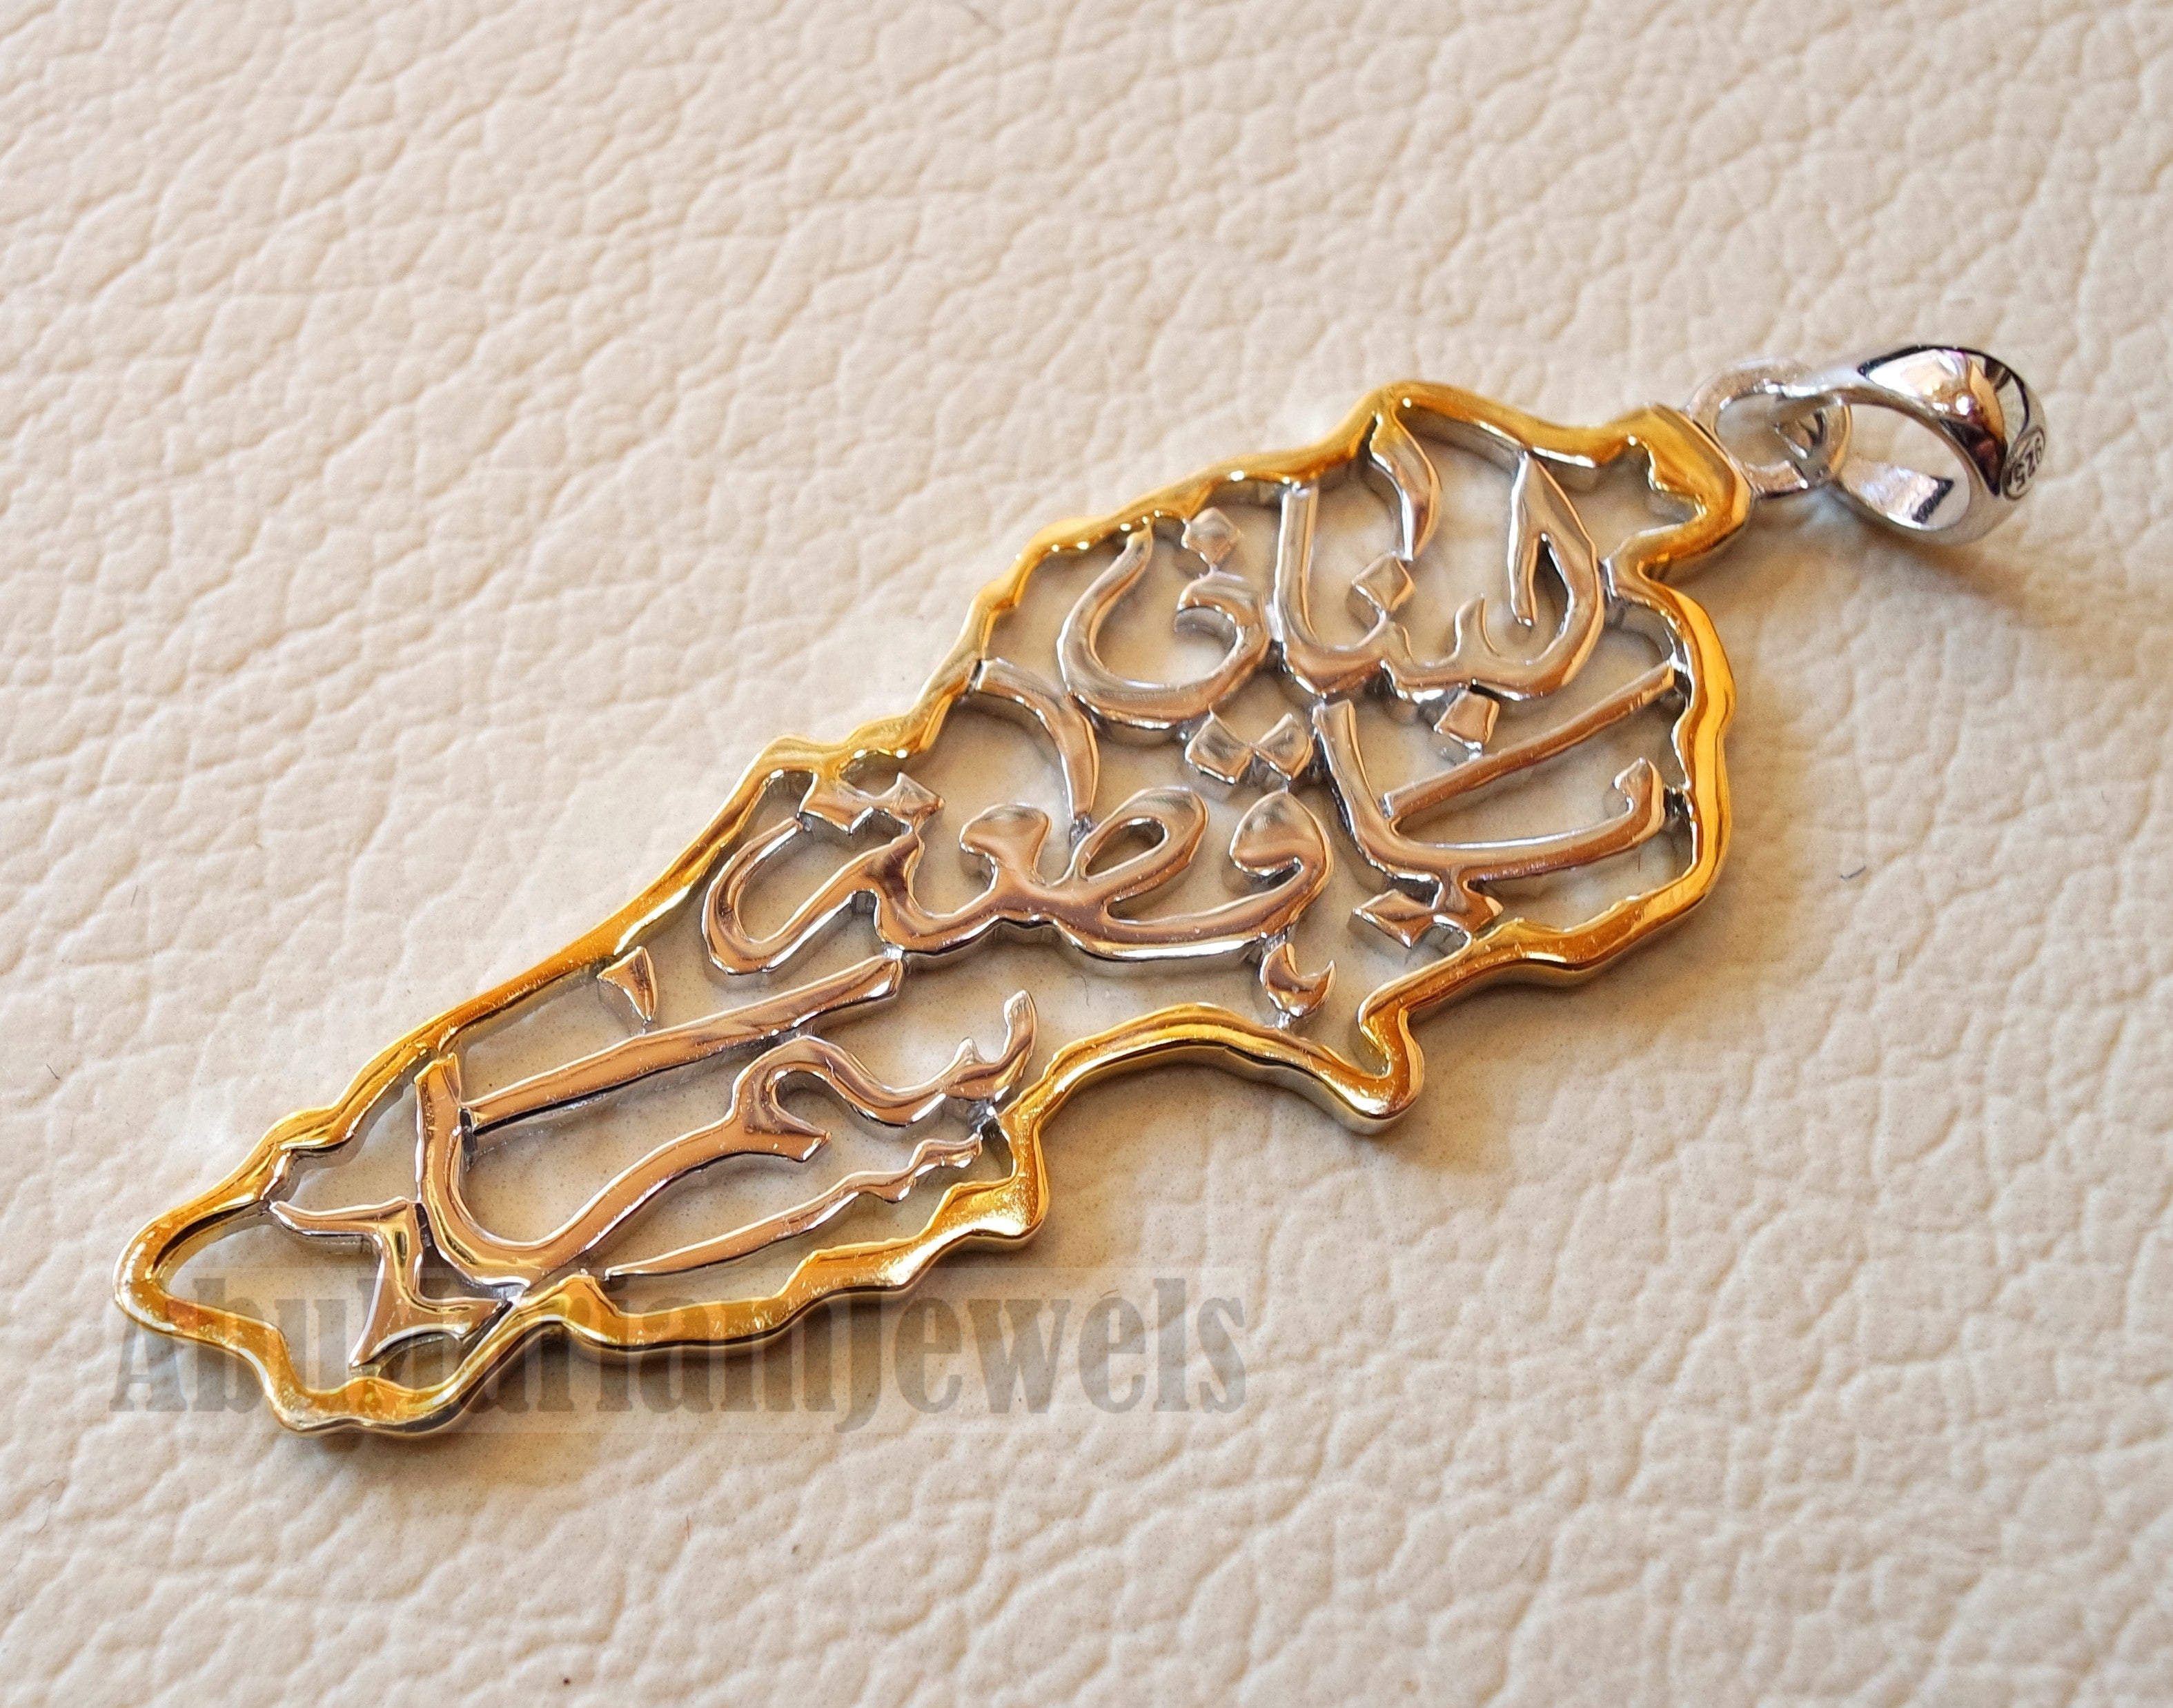 Lebanon map pendant with famous calligraphy sterling silver 925 high quality 14k gold plating jewelry arabic fast shipping خريطة لبنان